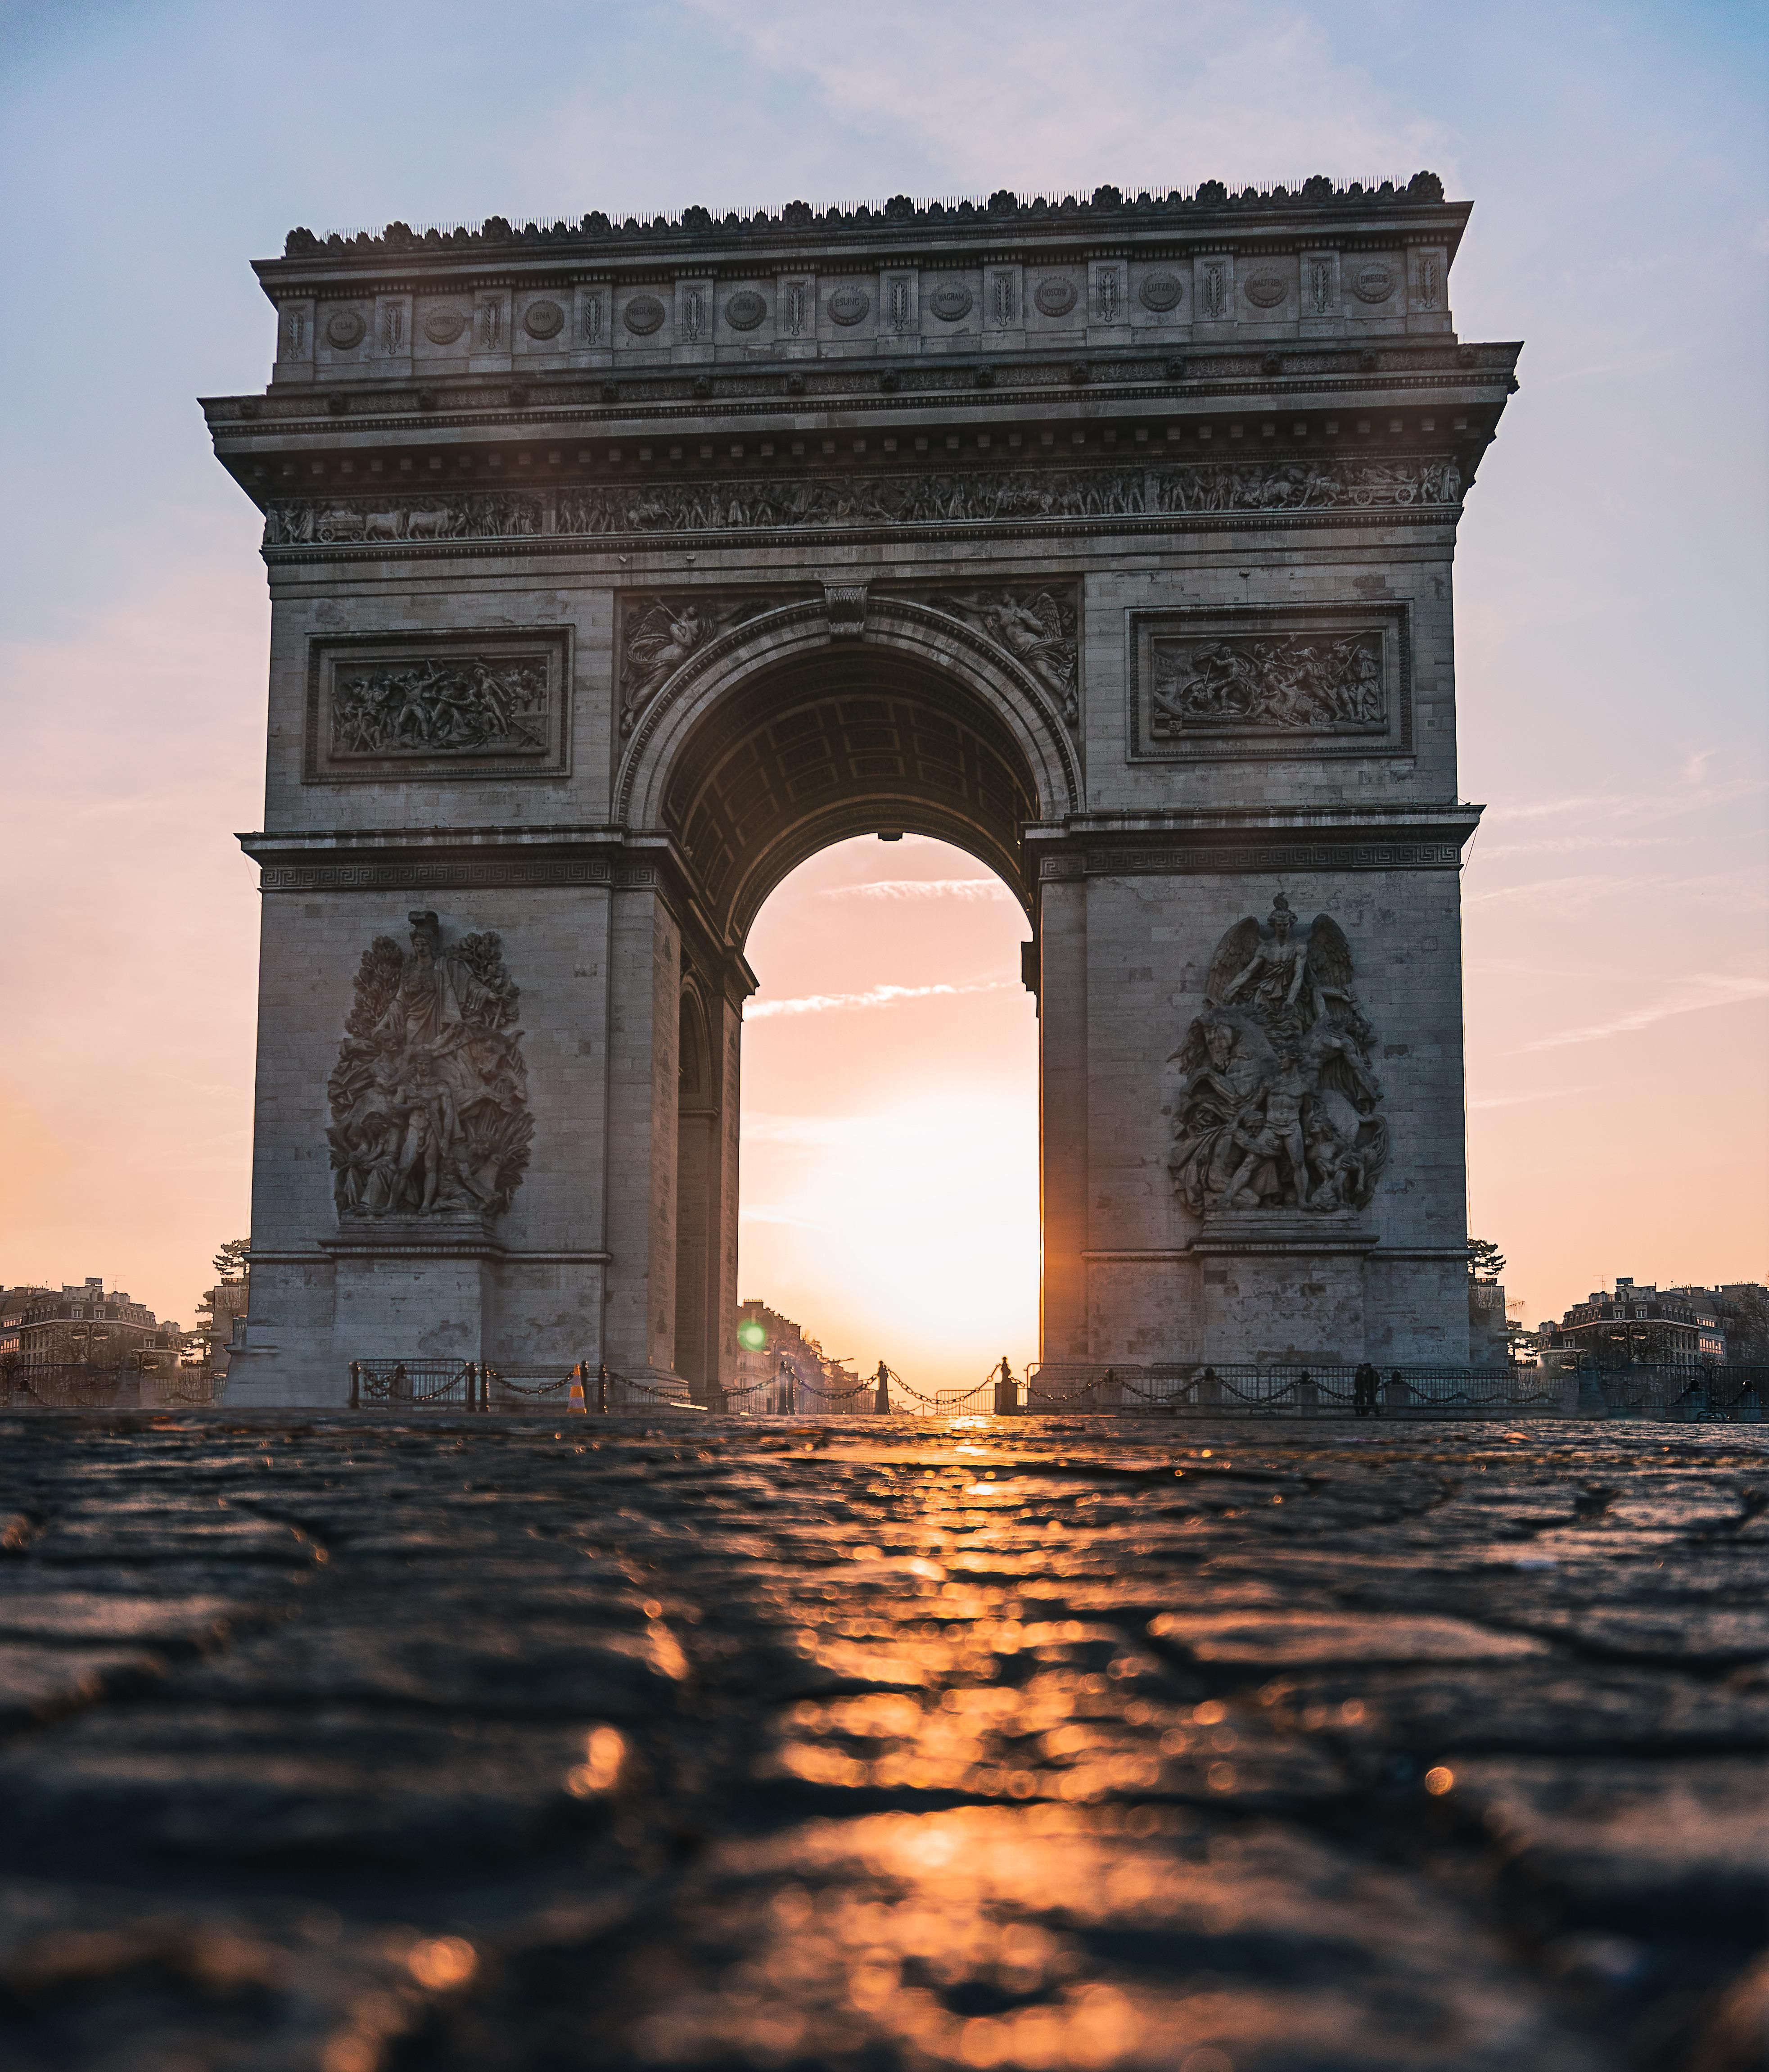 ITAP of the Arc de Triomphe#PHOTO #CAPTURE #NATURE #INCREDIBLE